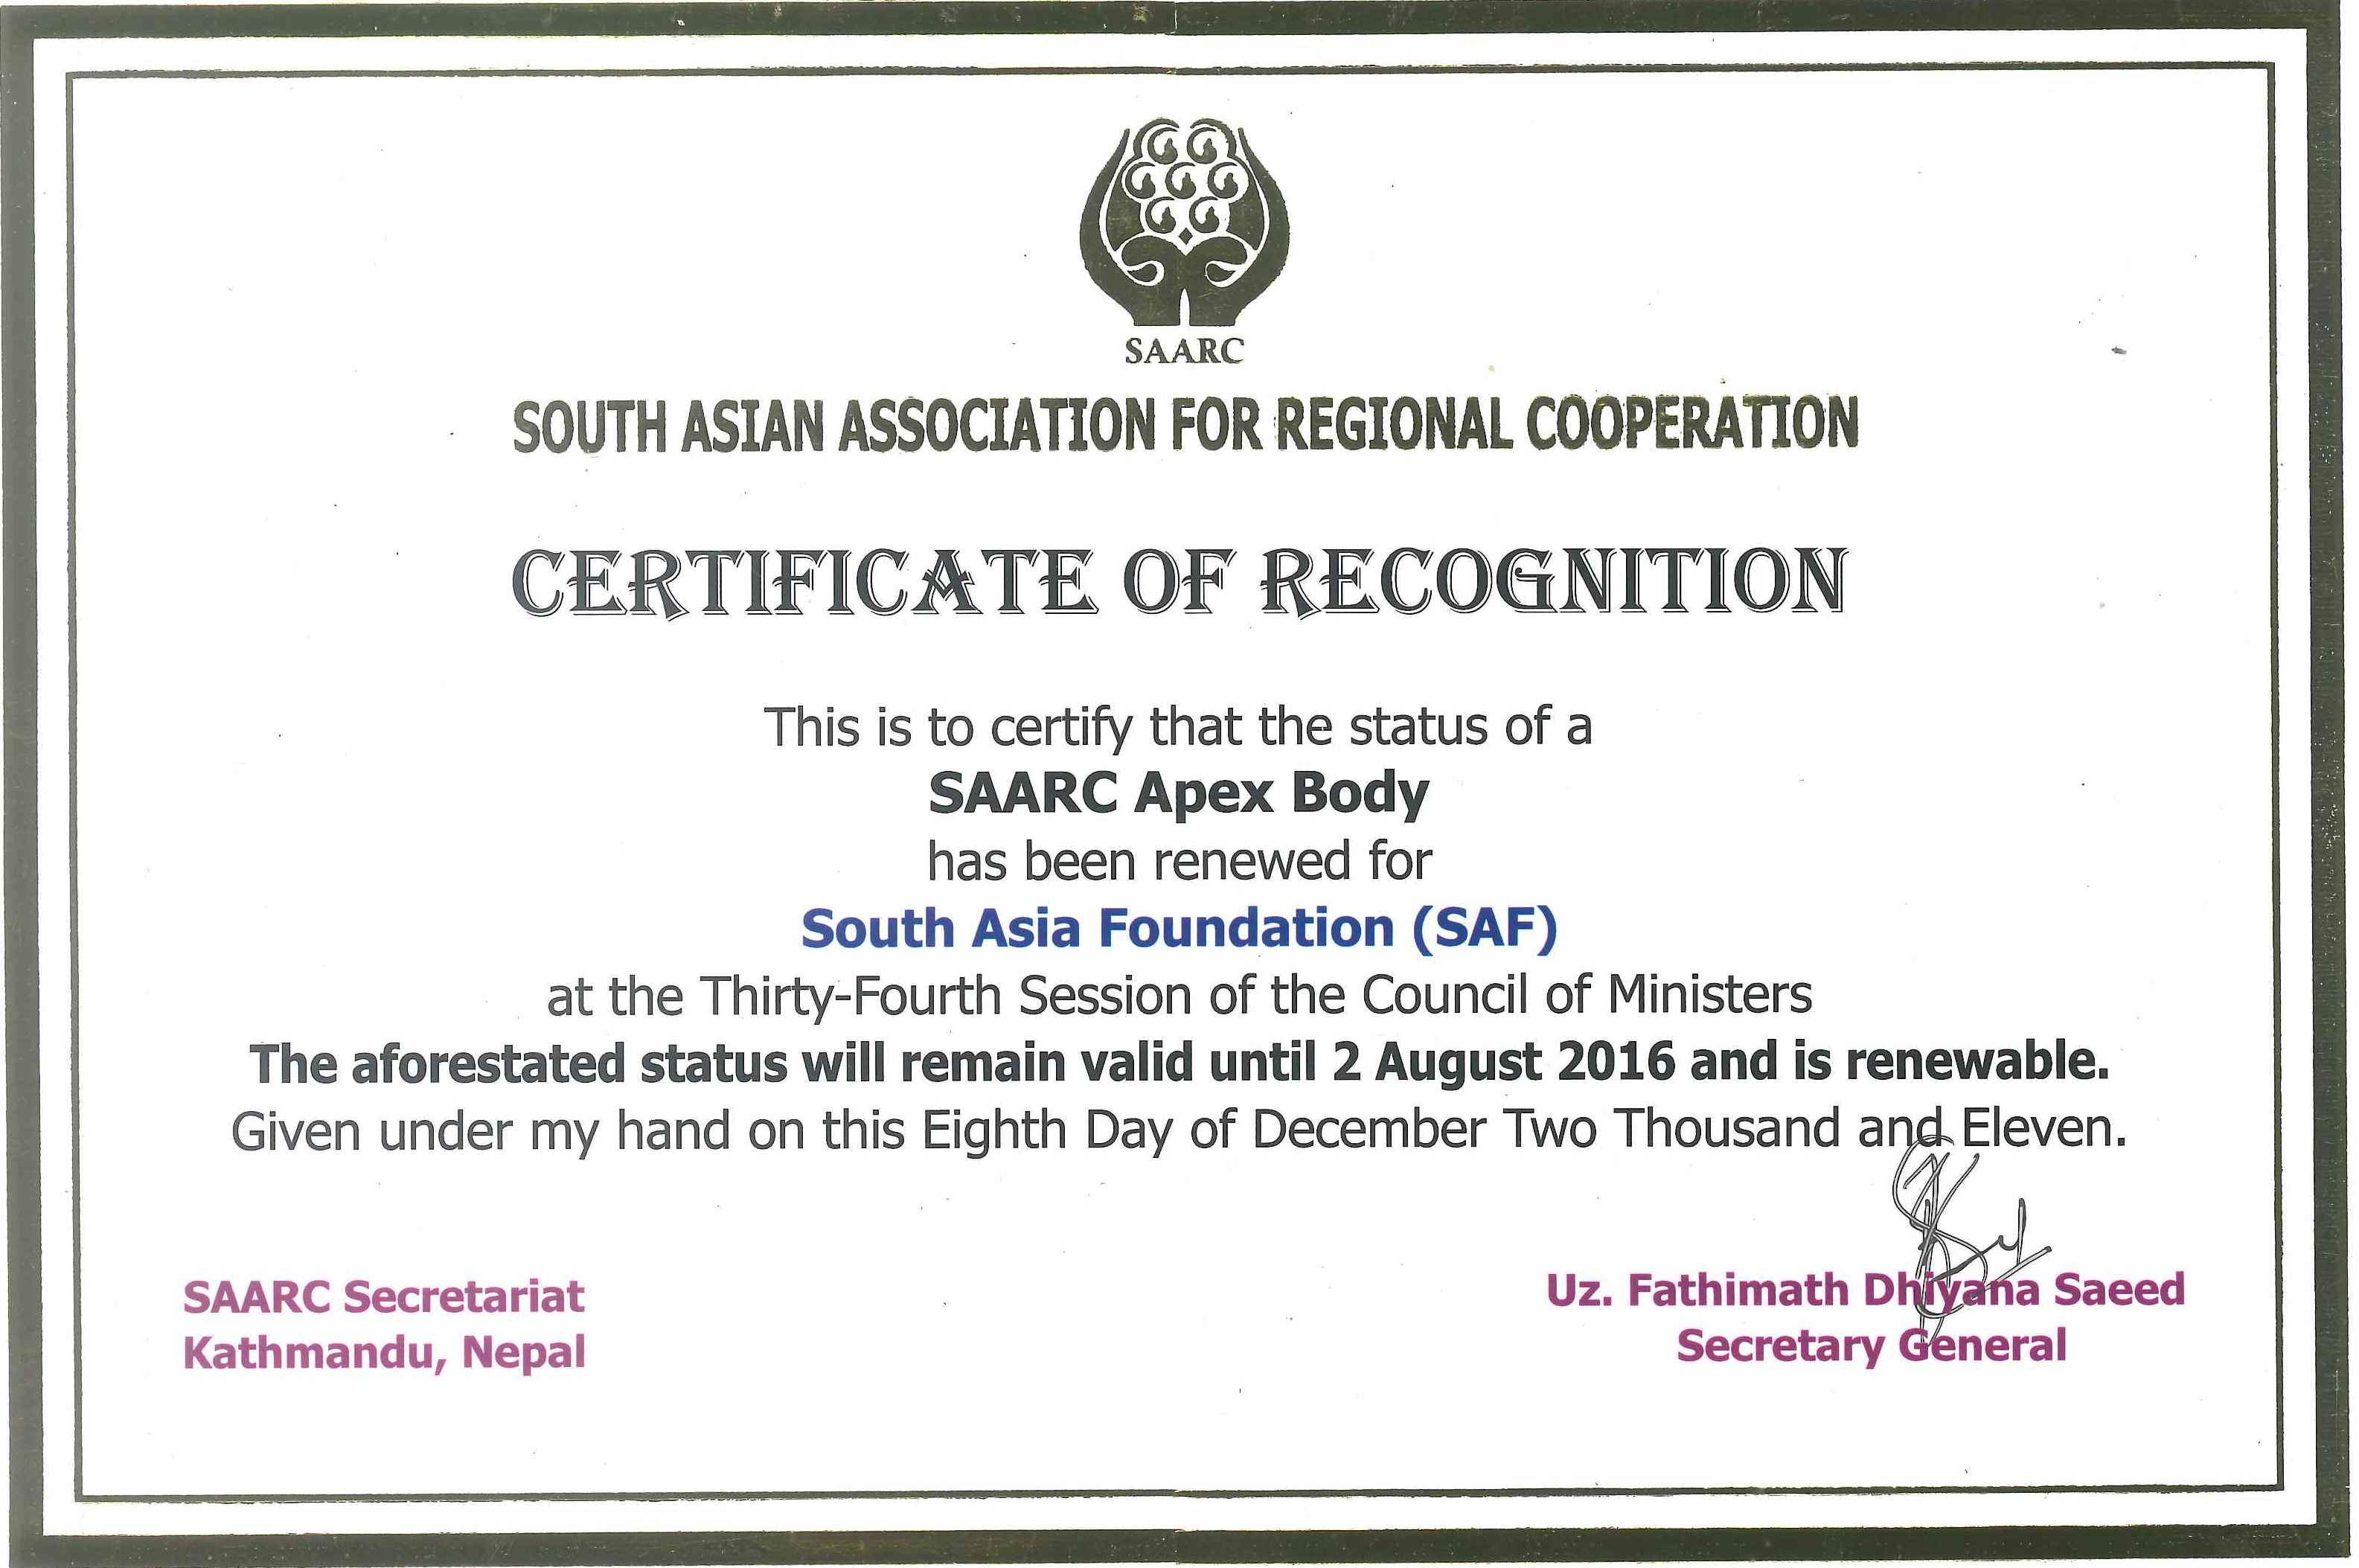 South Asia Foundation India SAARC Certificate Renewal for another 5 Years till 2 Aug 2016